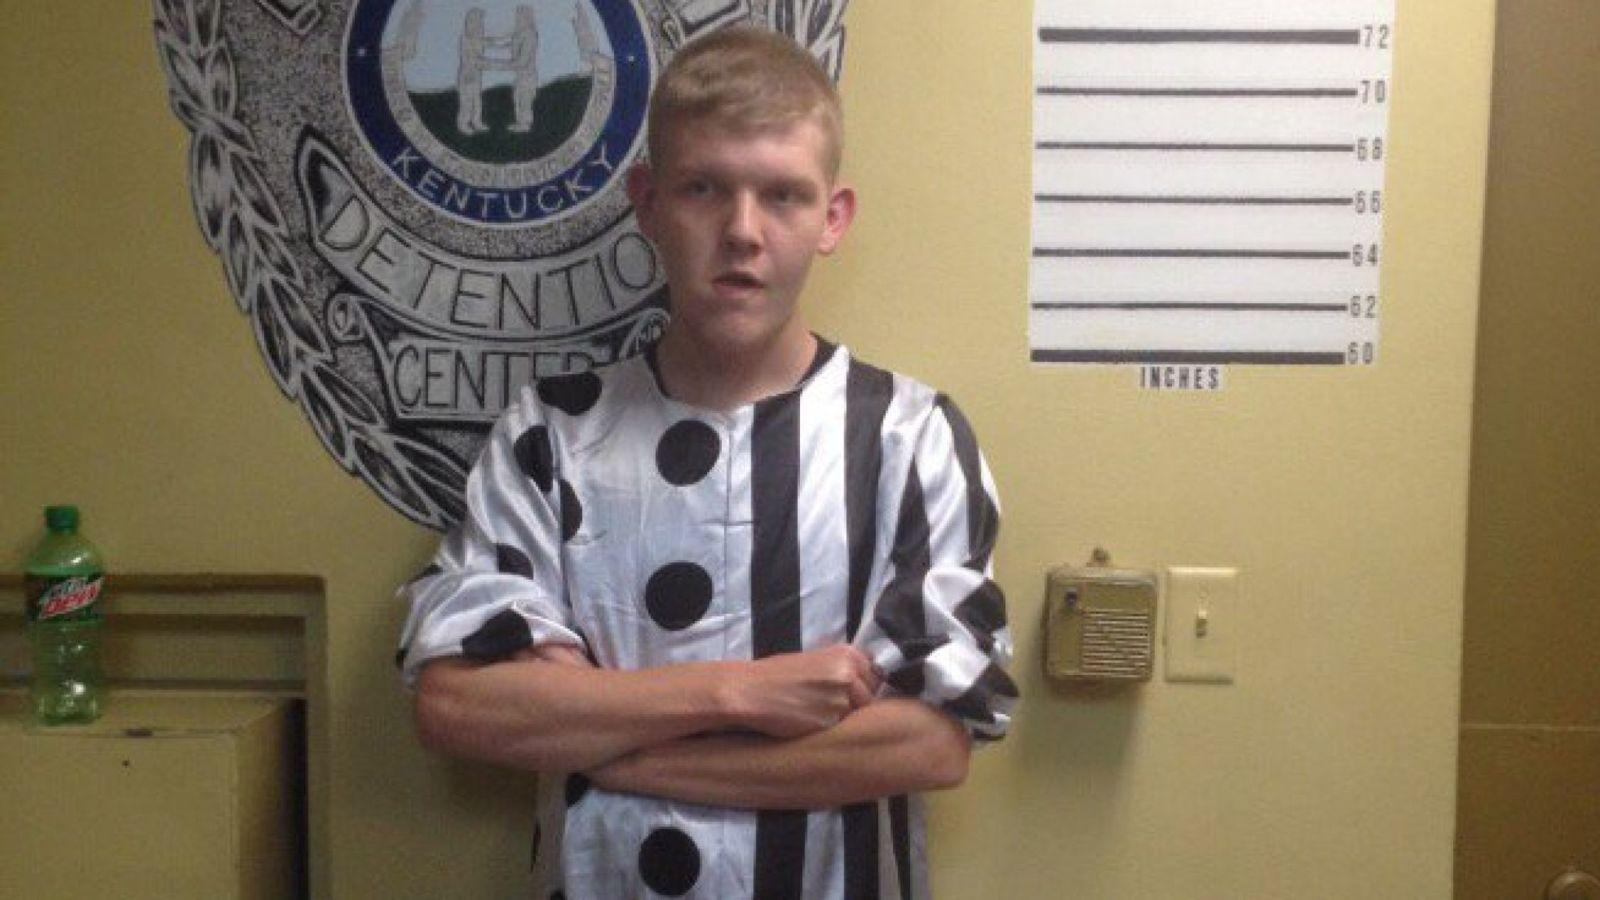 """Jonathan Martin, aged 20, was arrested for """"allegedly causing public alarm"""" in his clown costume."""